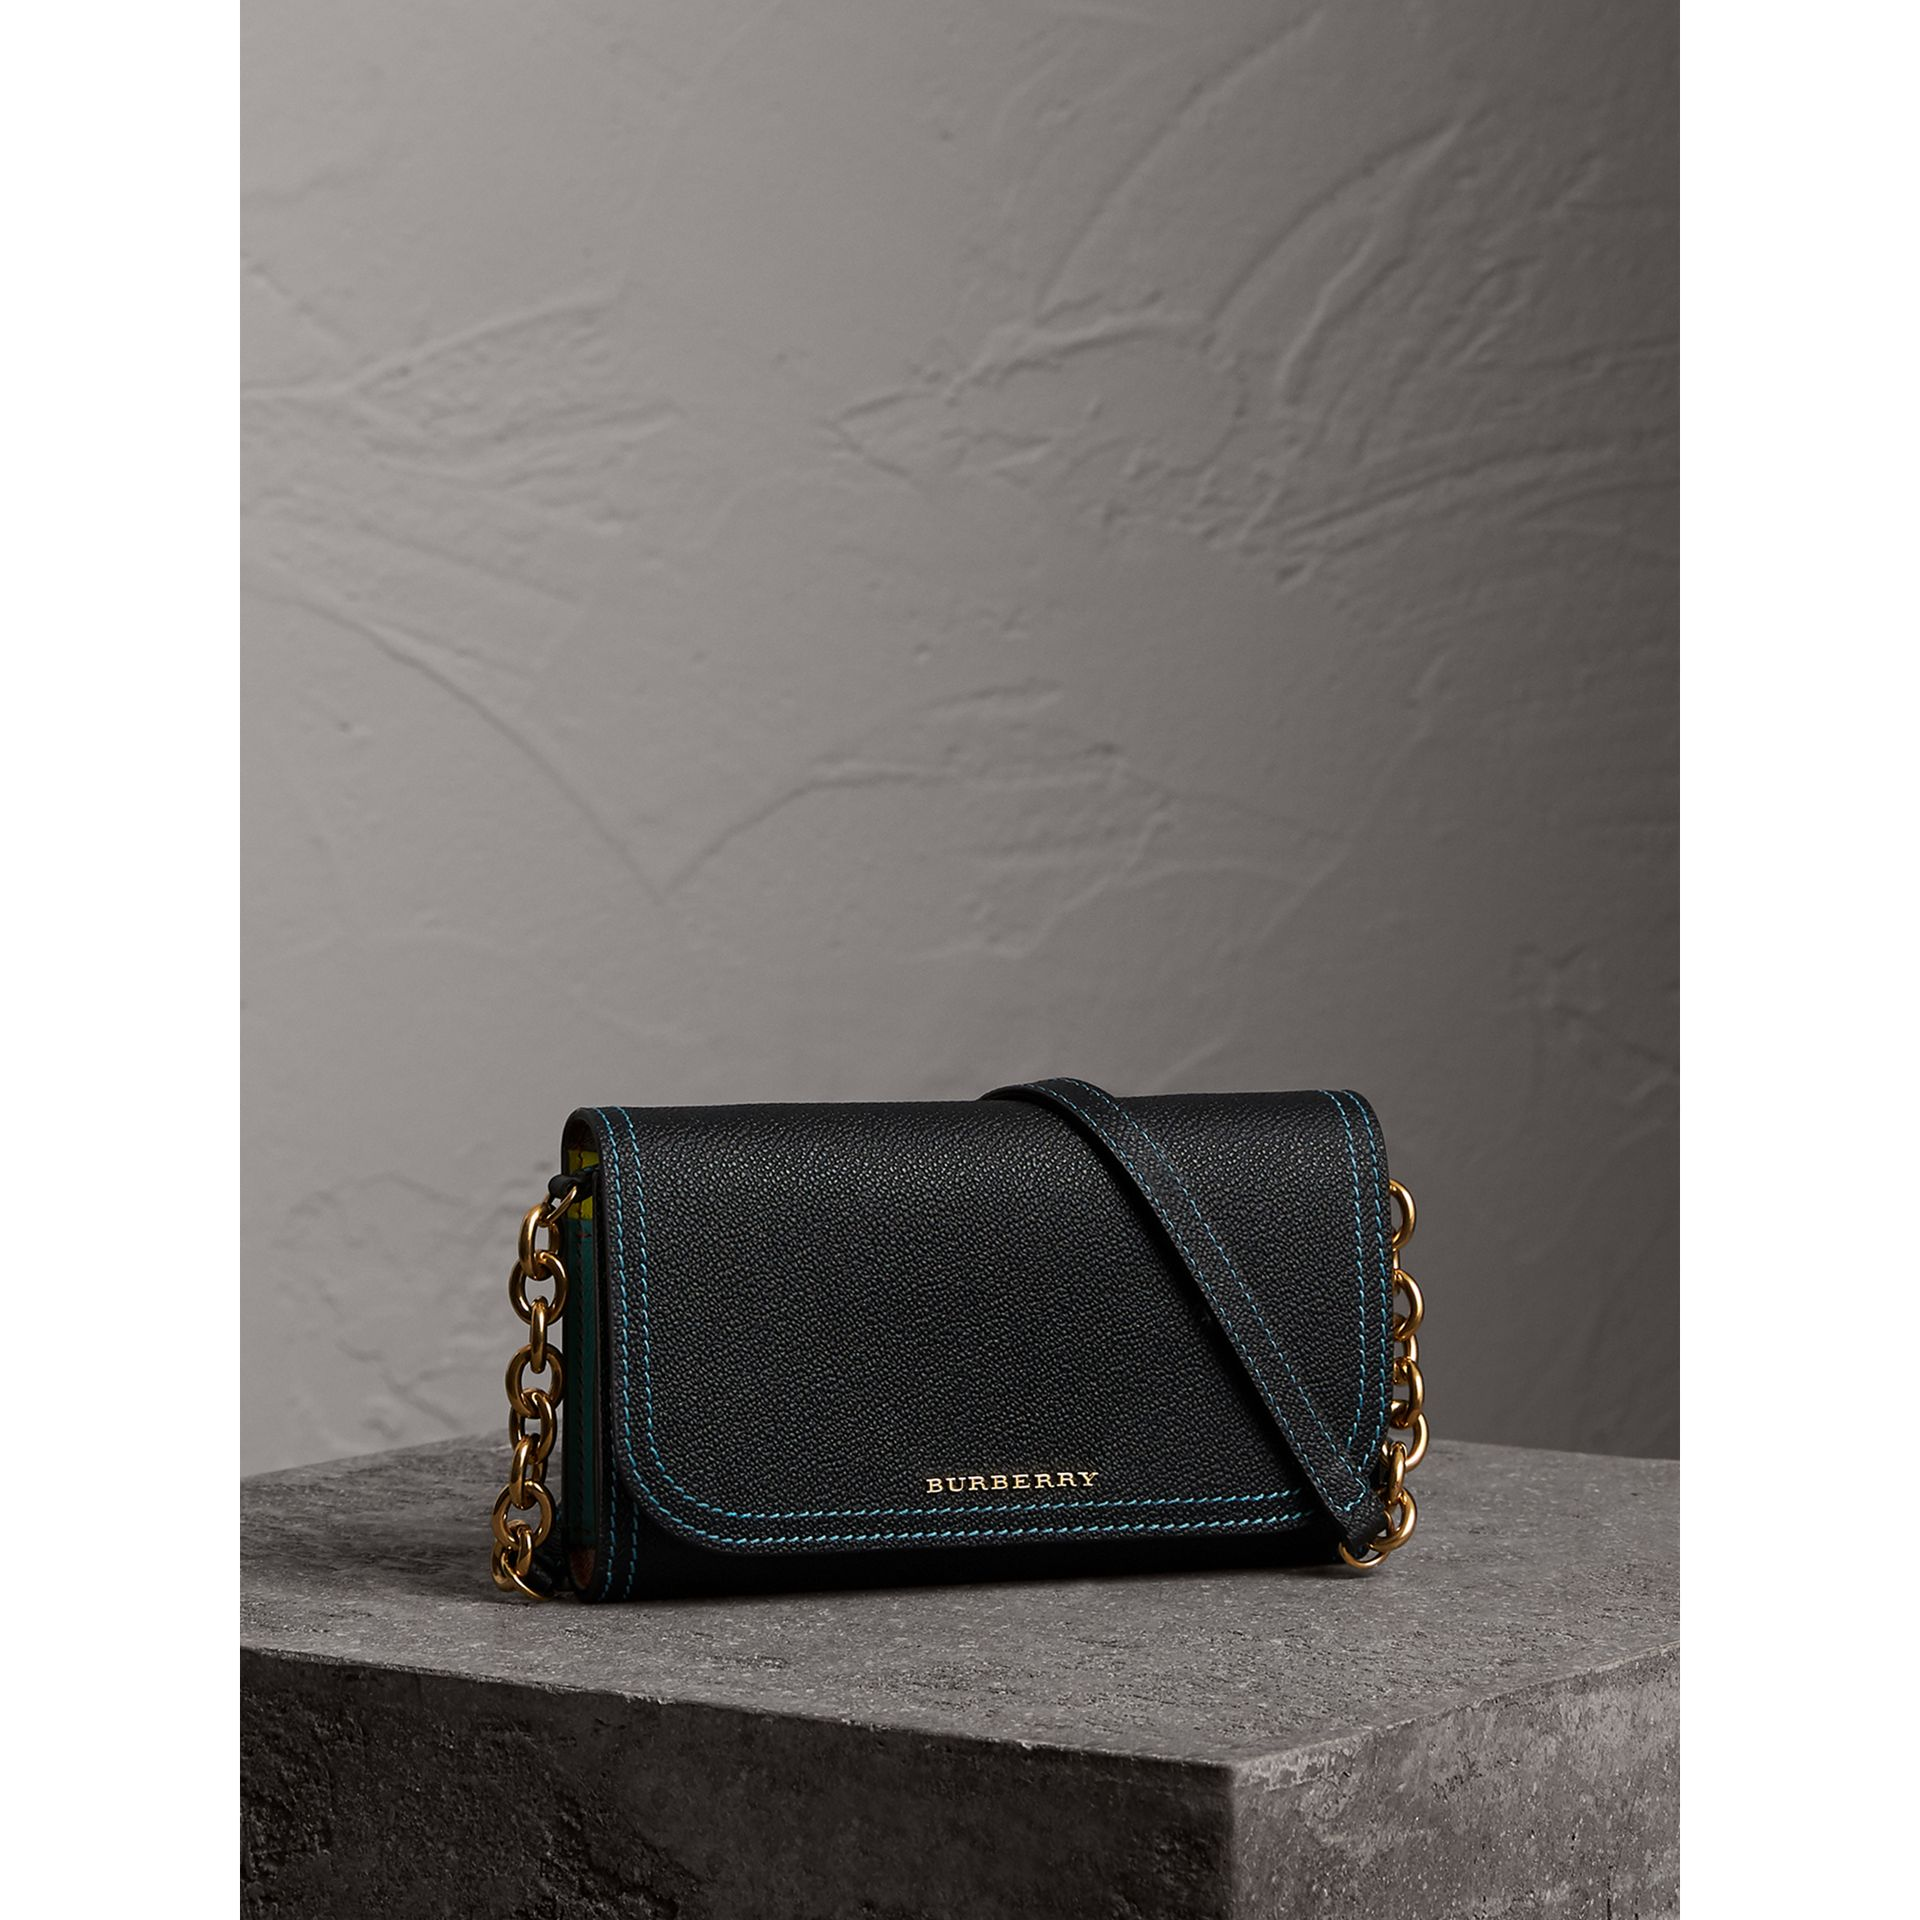 Topstitch Detail Leather Wallet with Detachable Strap in Black/multicolour - Women | Burberry Australia - gallery image 1